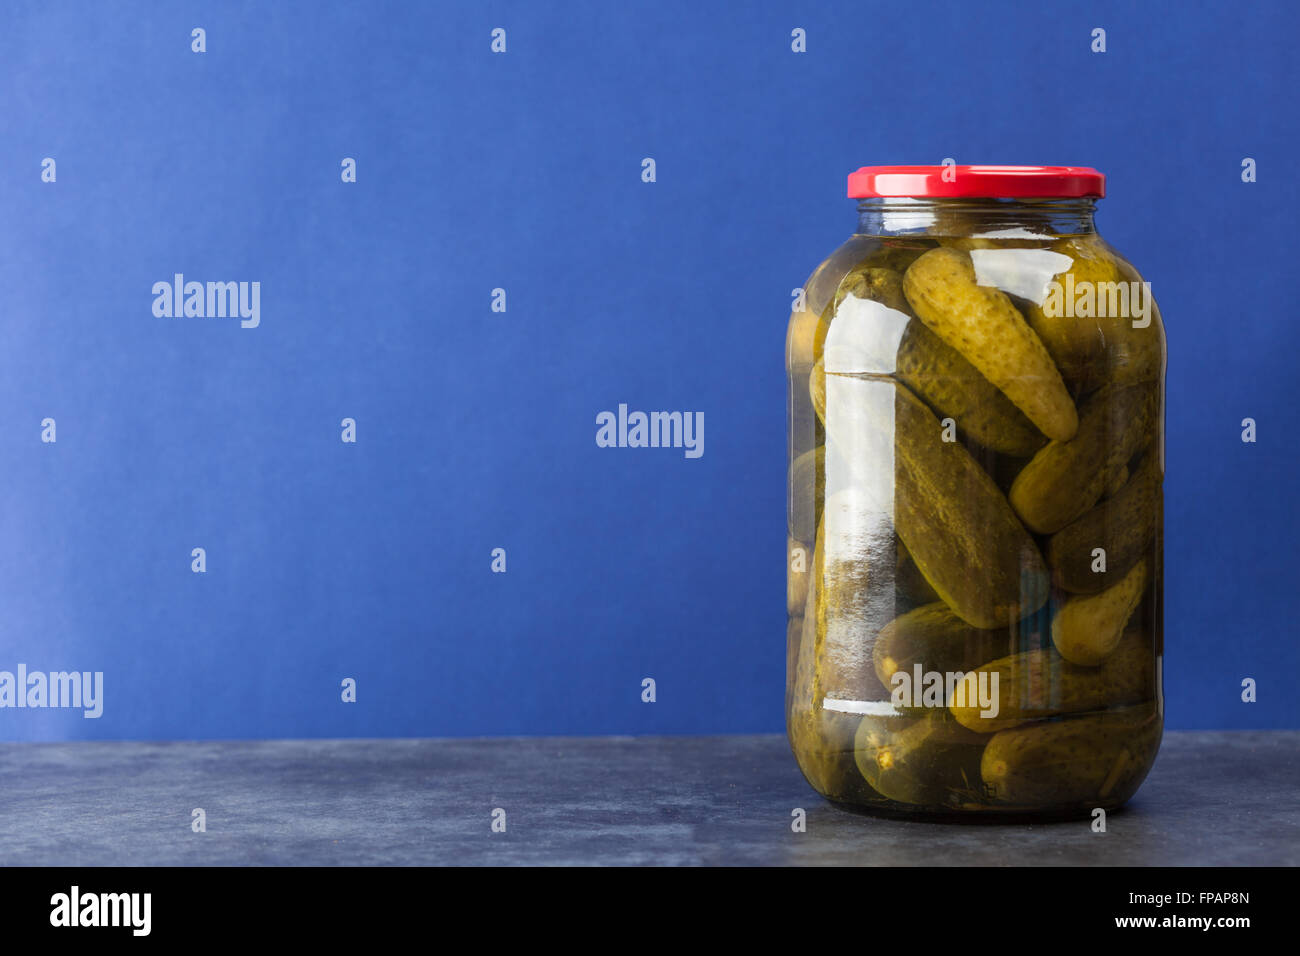 Big jar with pickles on blue background with copy space - Stock Image